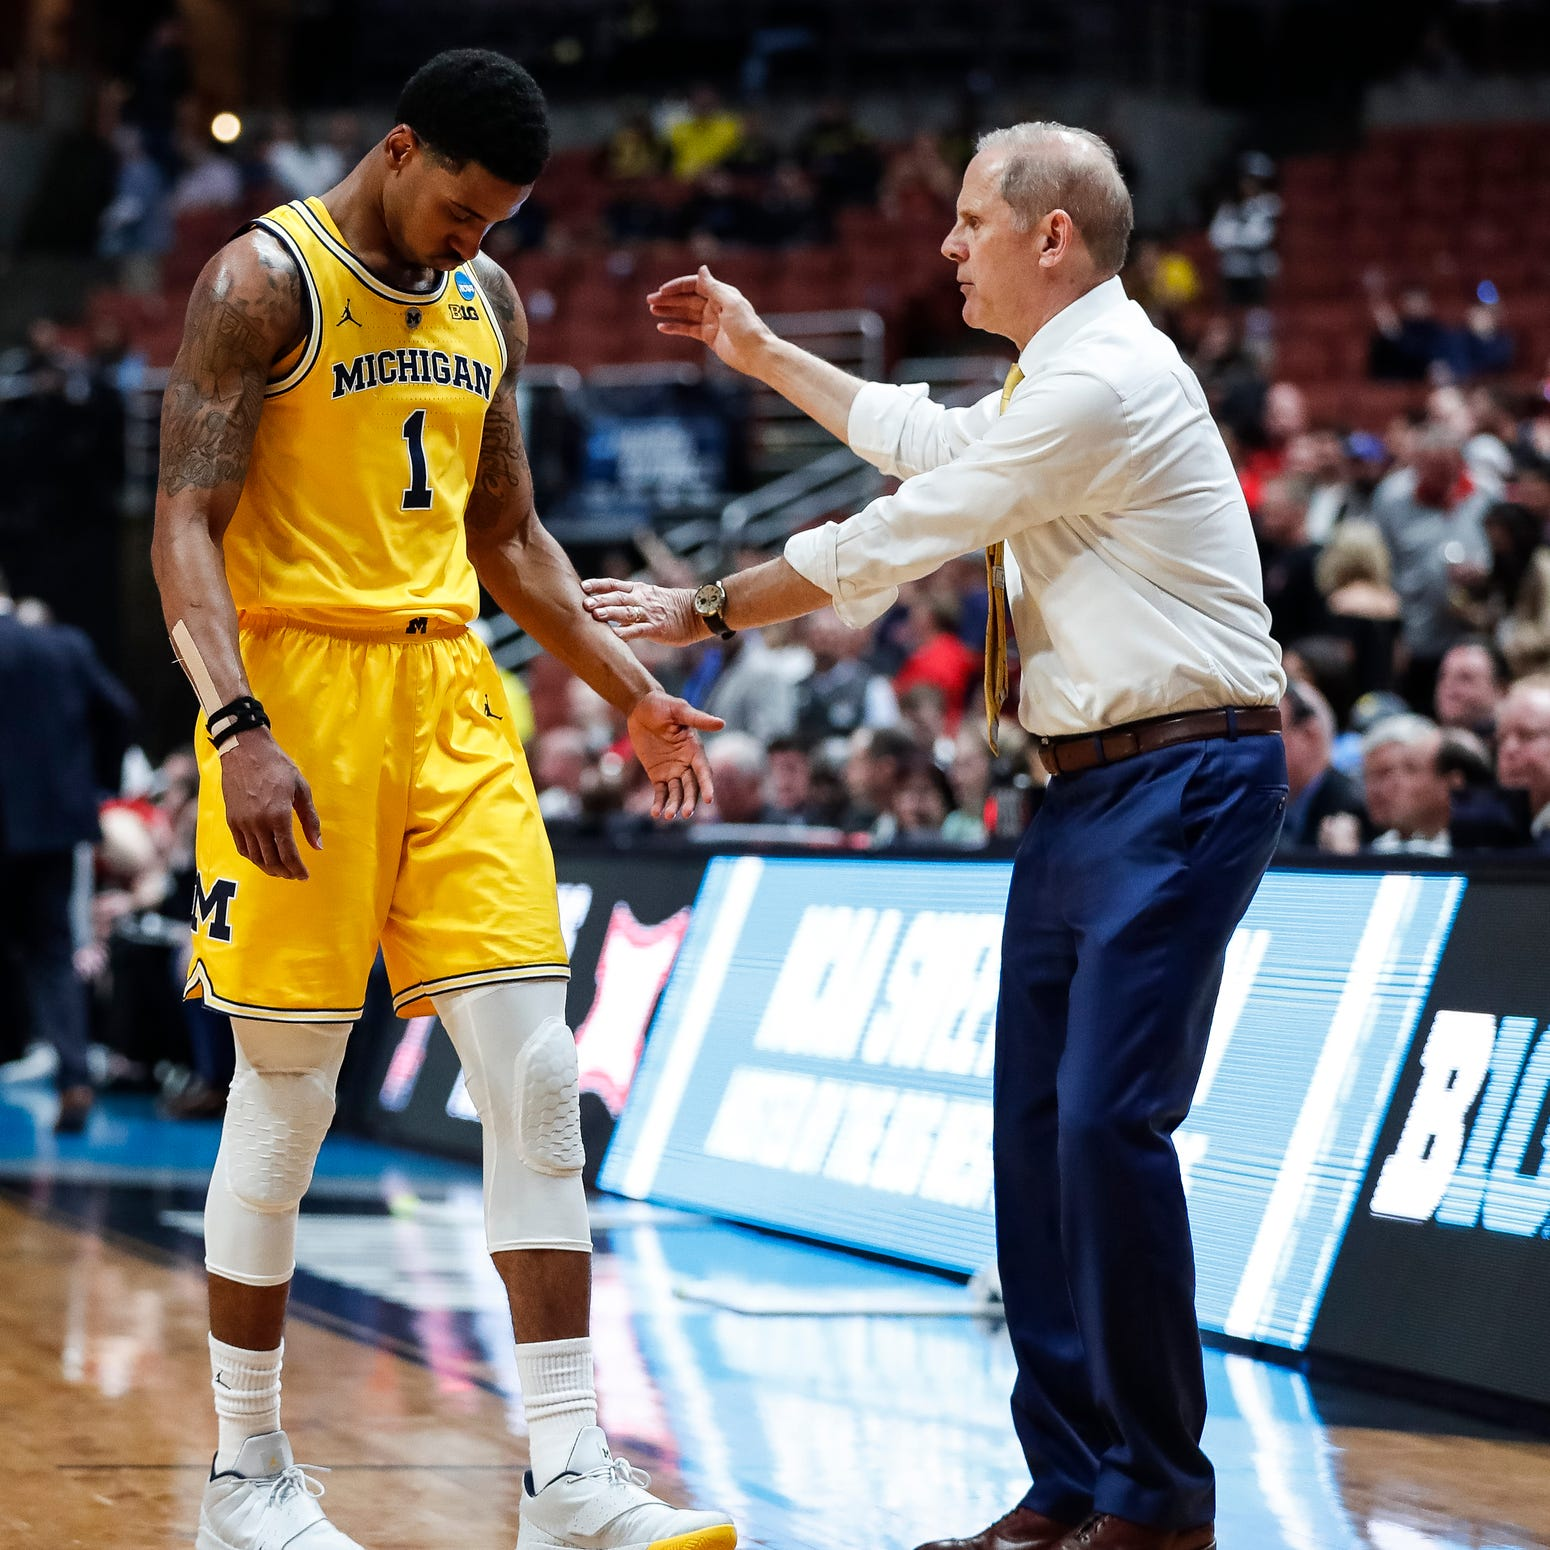 Michigan's John Beilein no stranger to retooling roster. Time to do it again